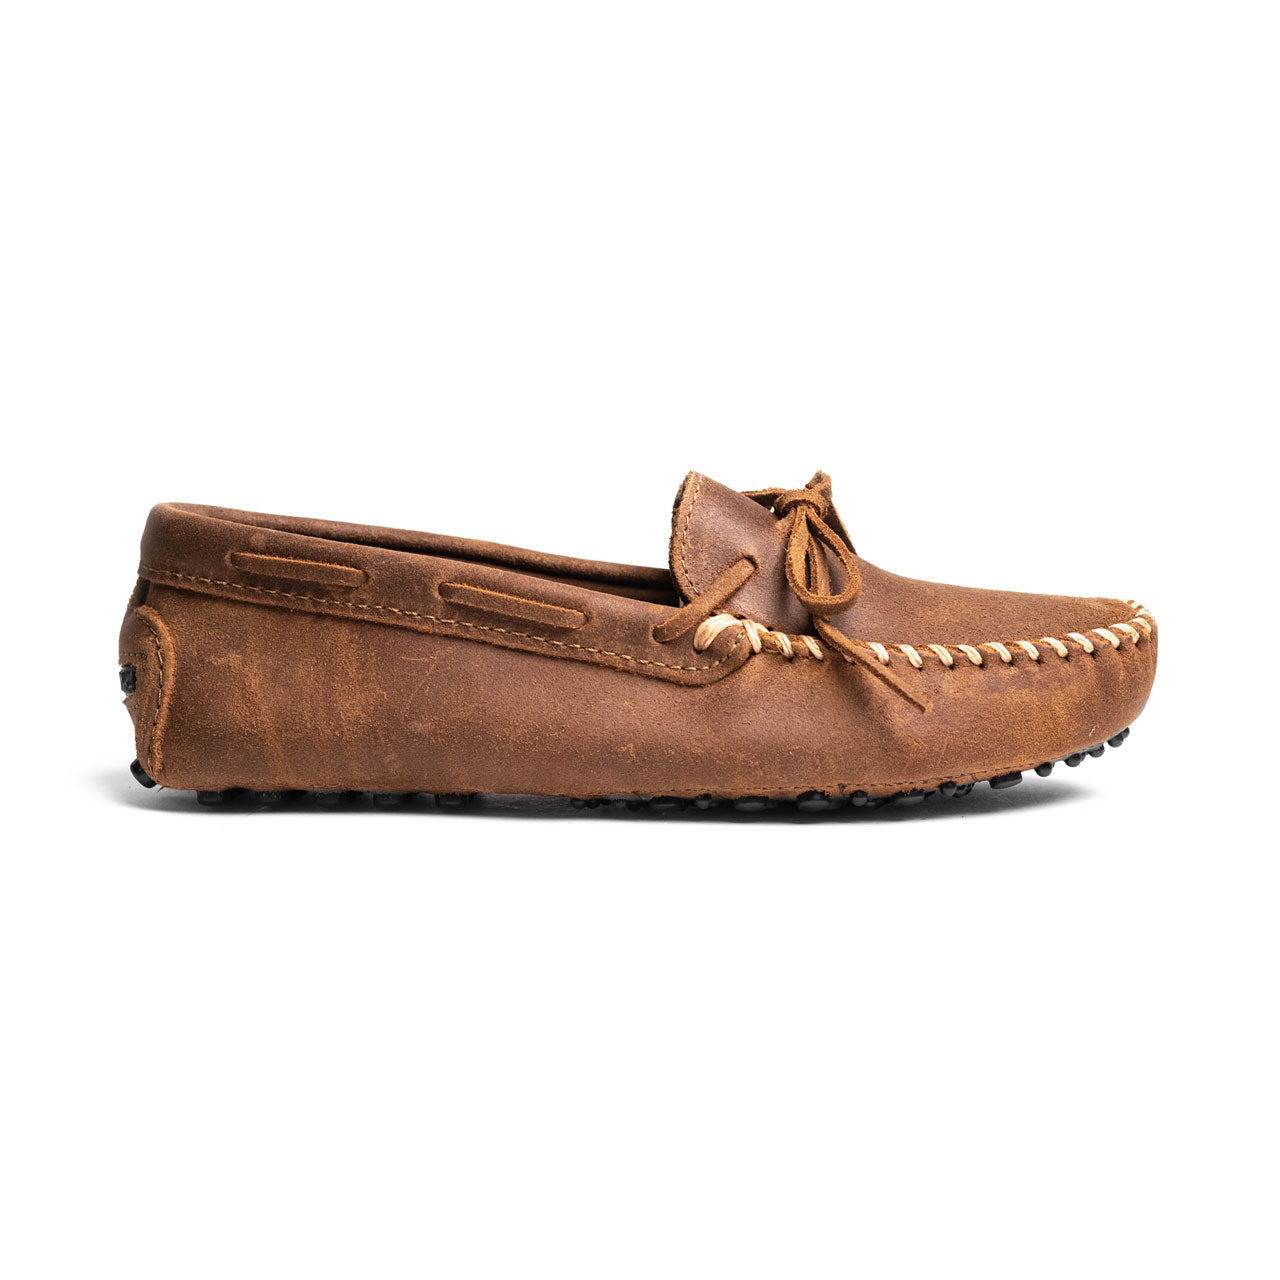 Minnetonka Classic Driving Shoe